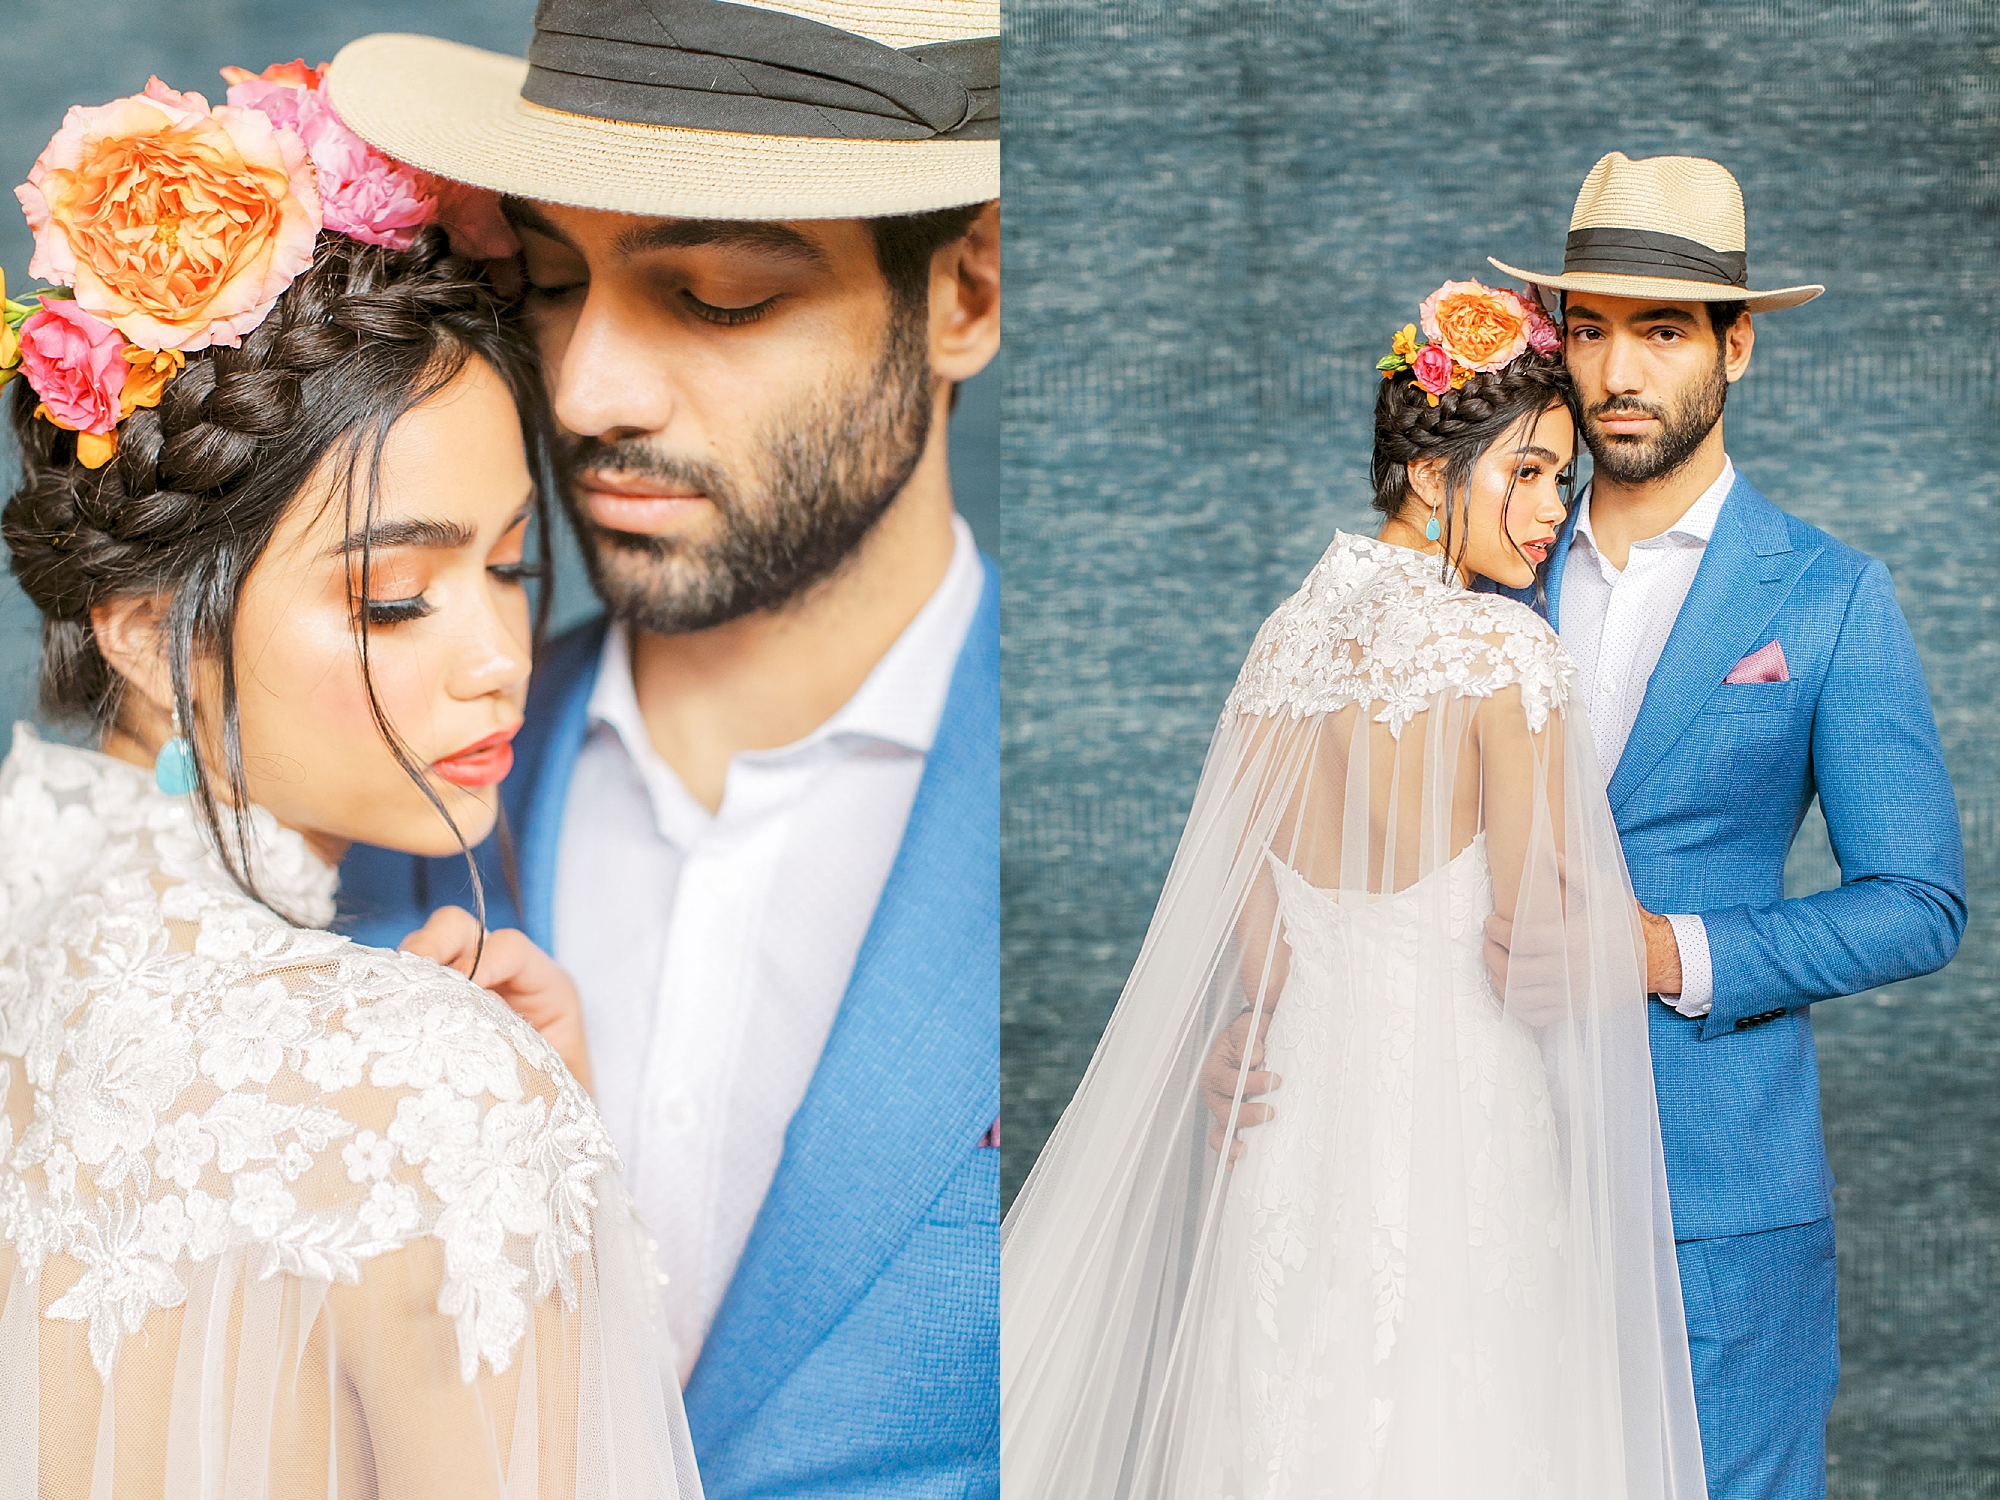 Vibrant and Colorful Frida Kahlo Inspired Wedding Photography by Magdalena Studios 0047